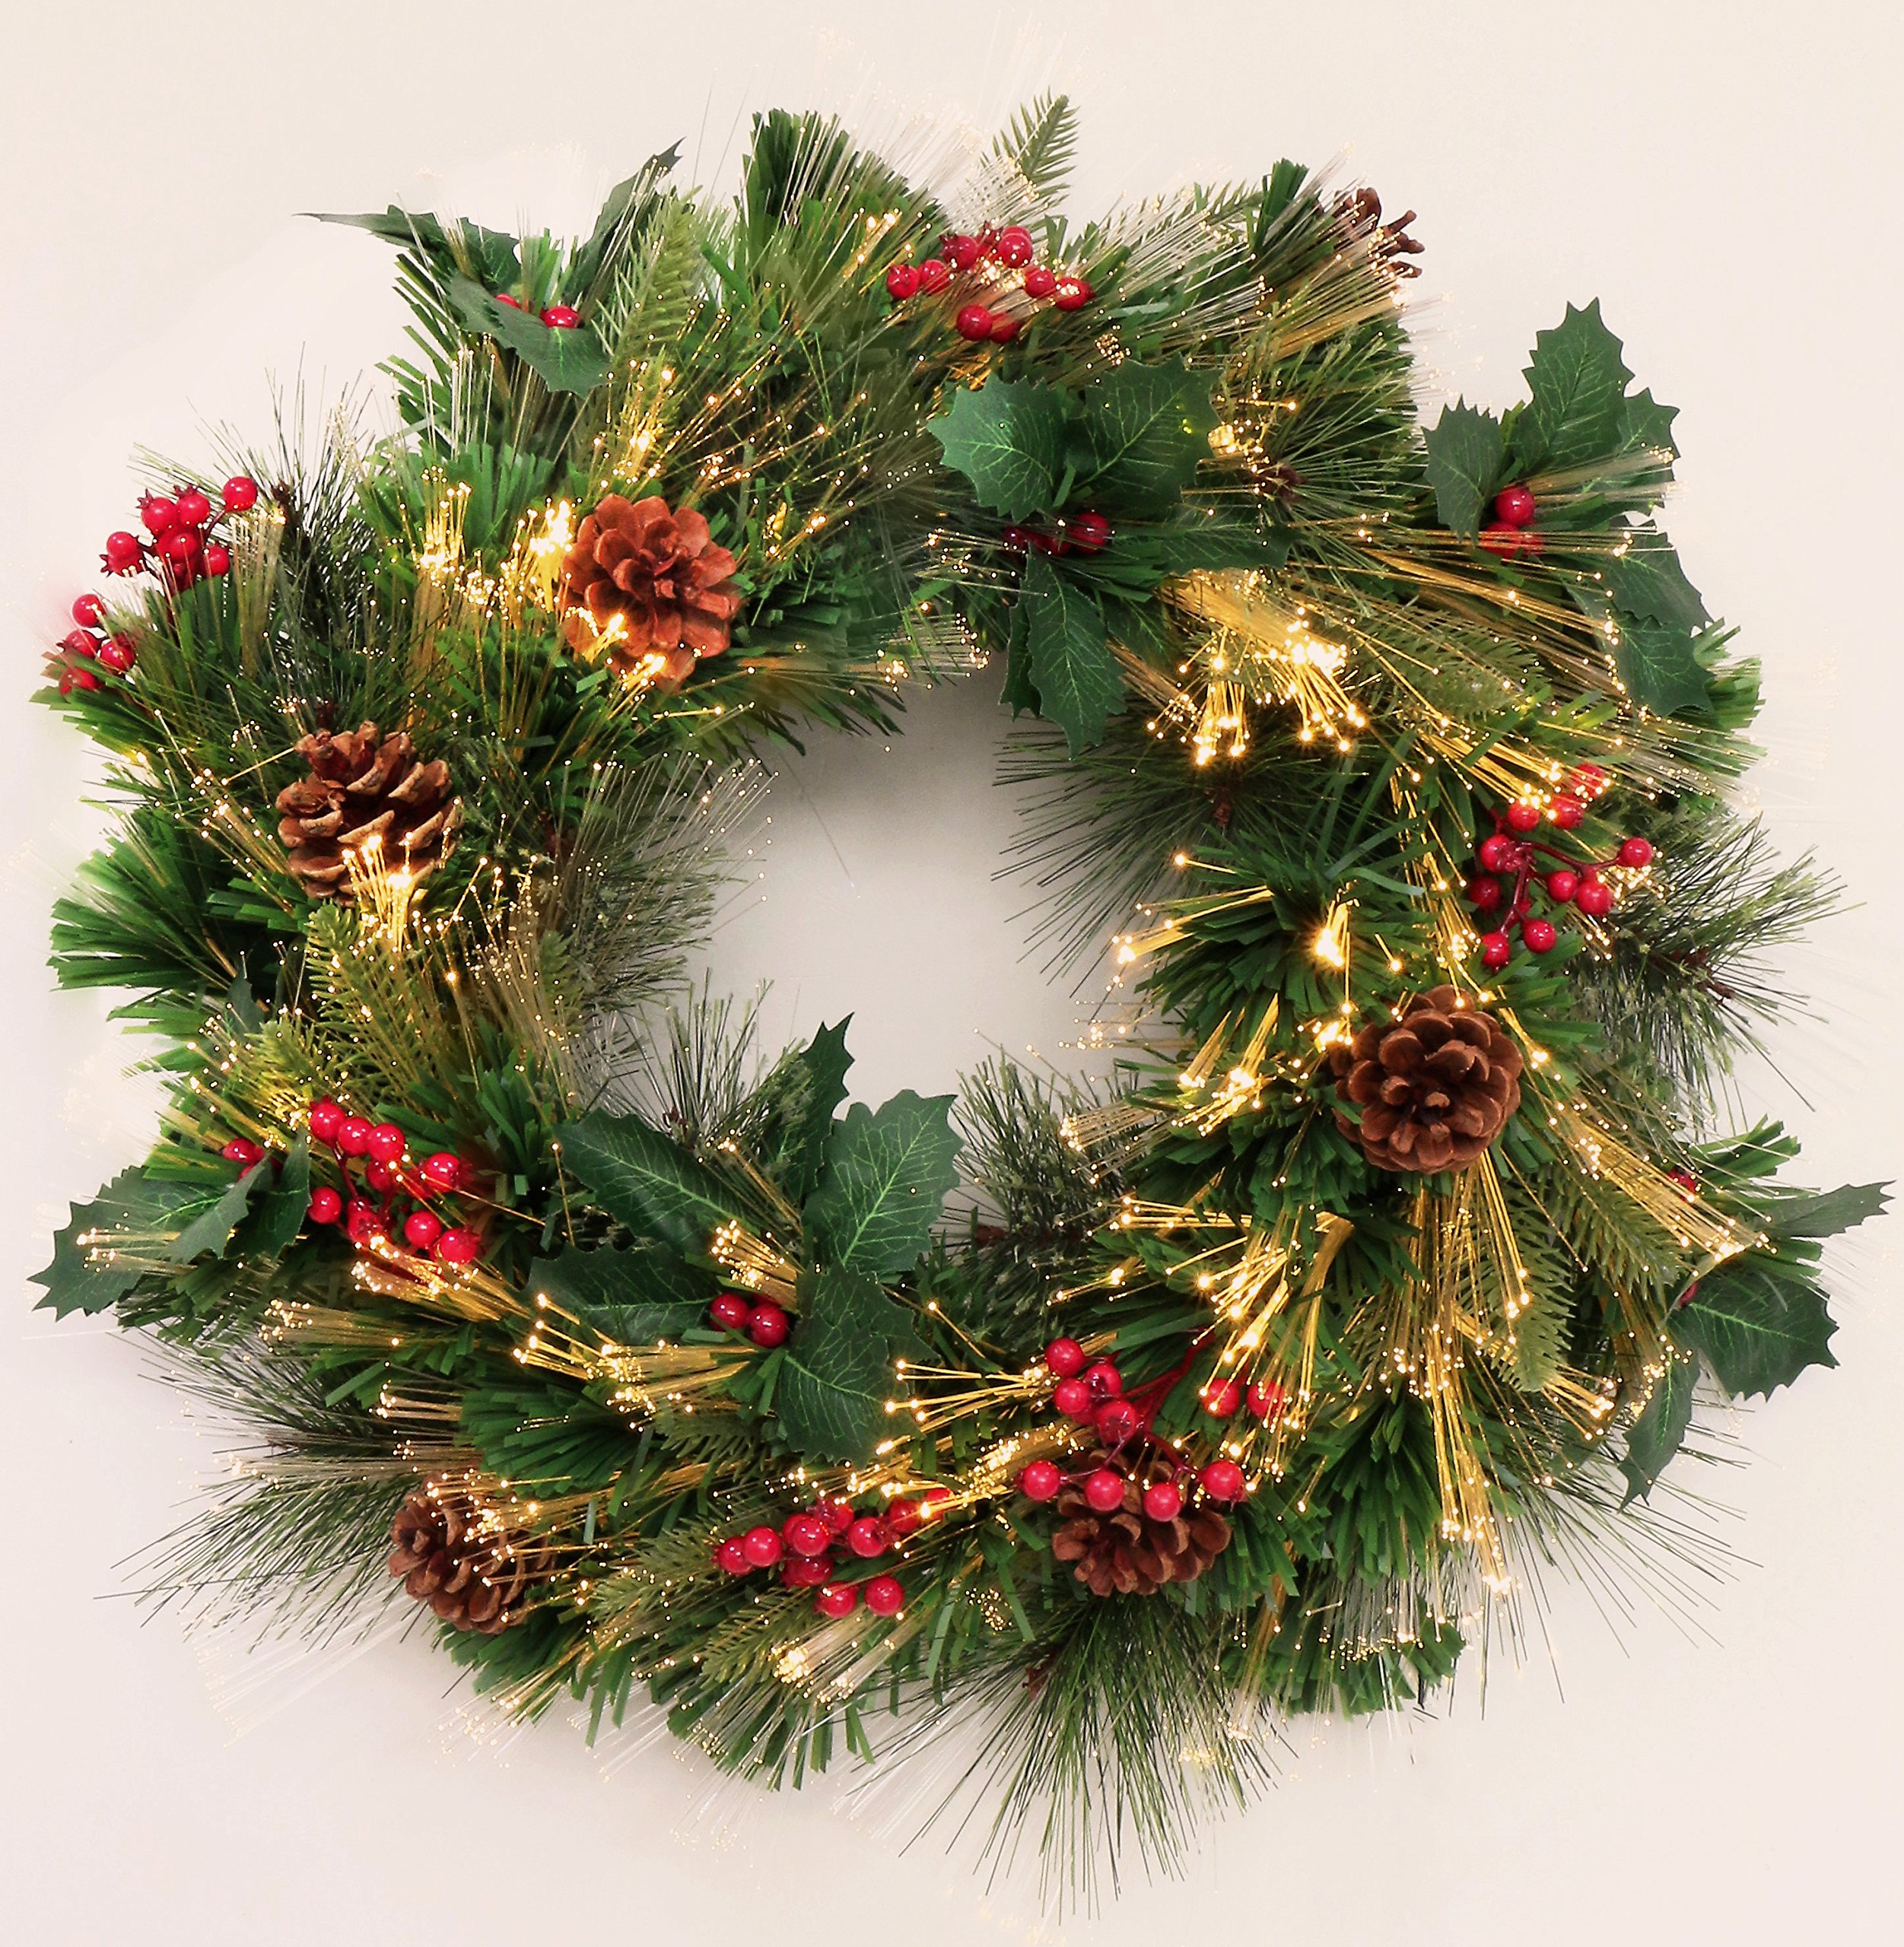 Holiday Favor LED Fiber Optic Christmas Wreath Decorated with Pine Cones and Red Barries (24in, Wreath/Plug-in)